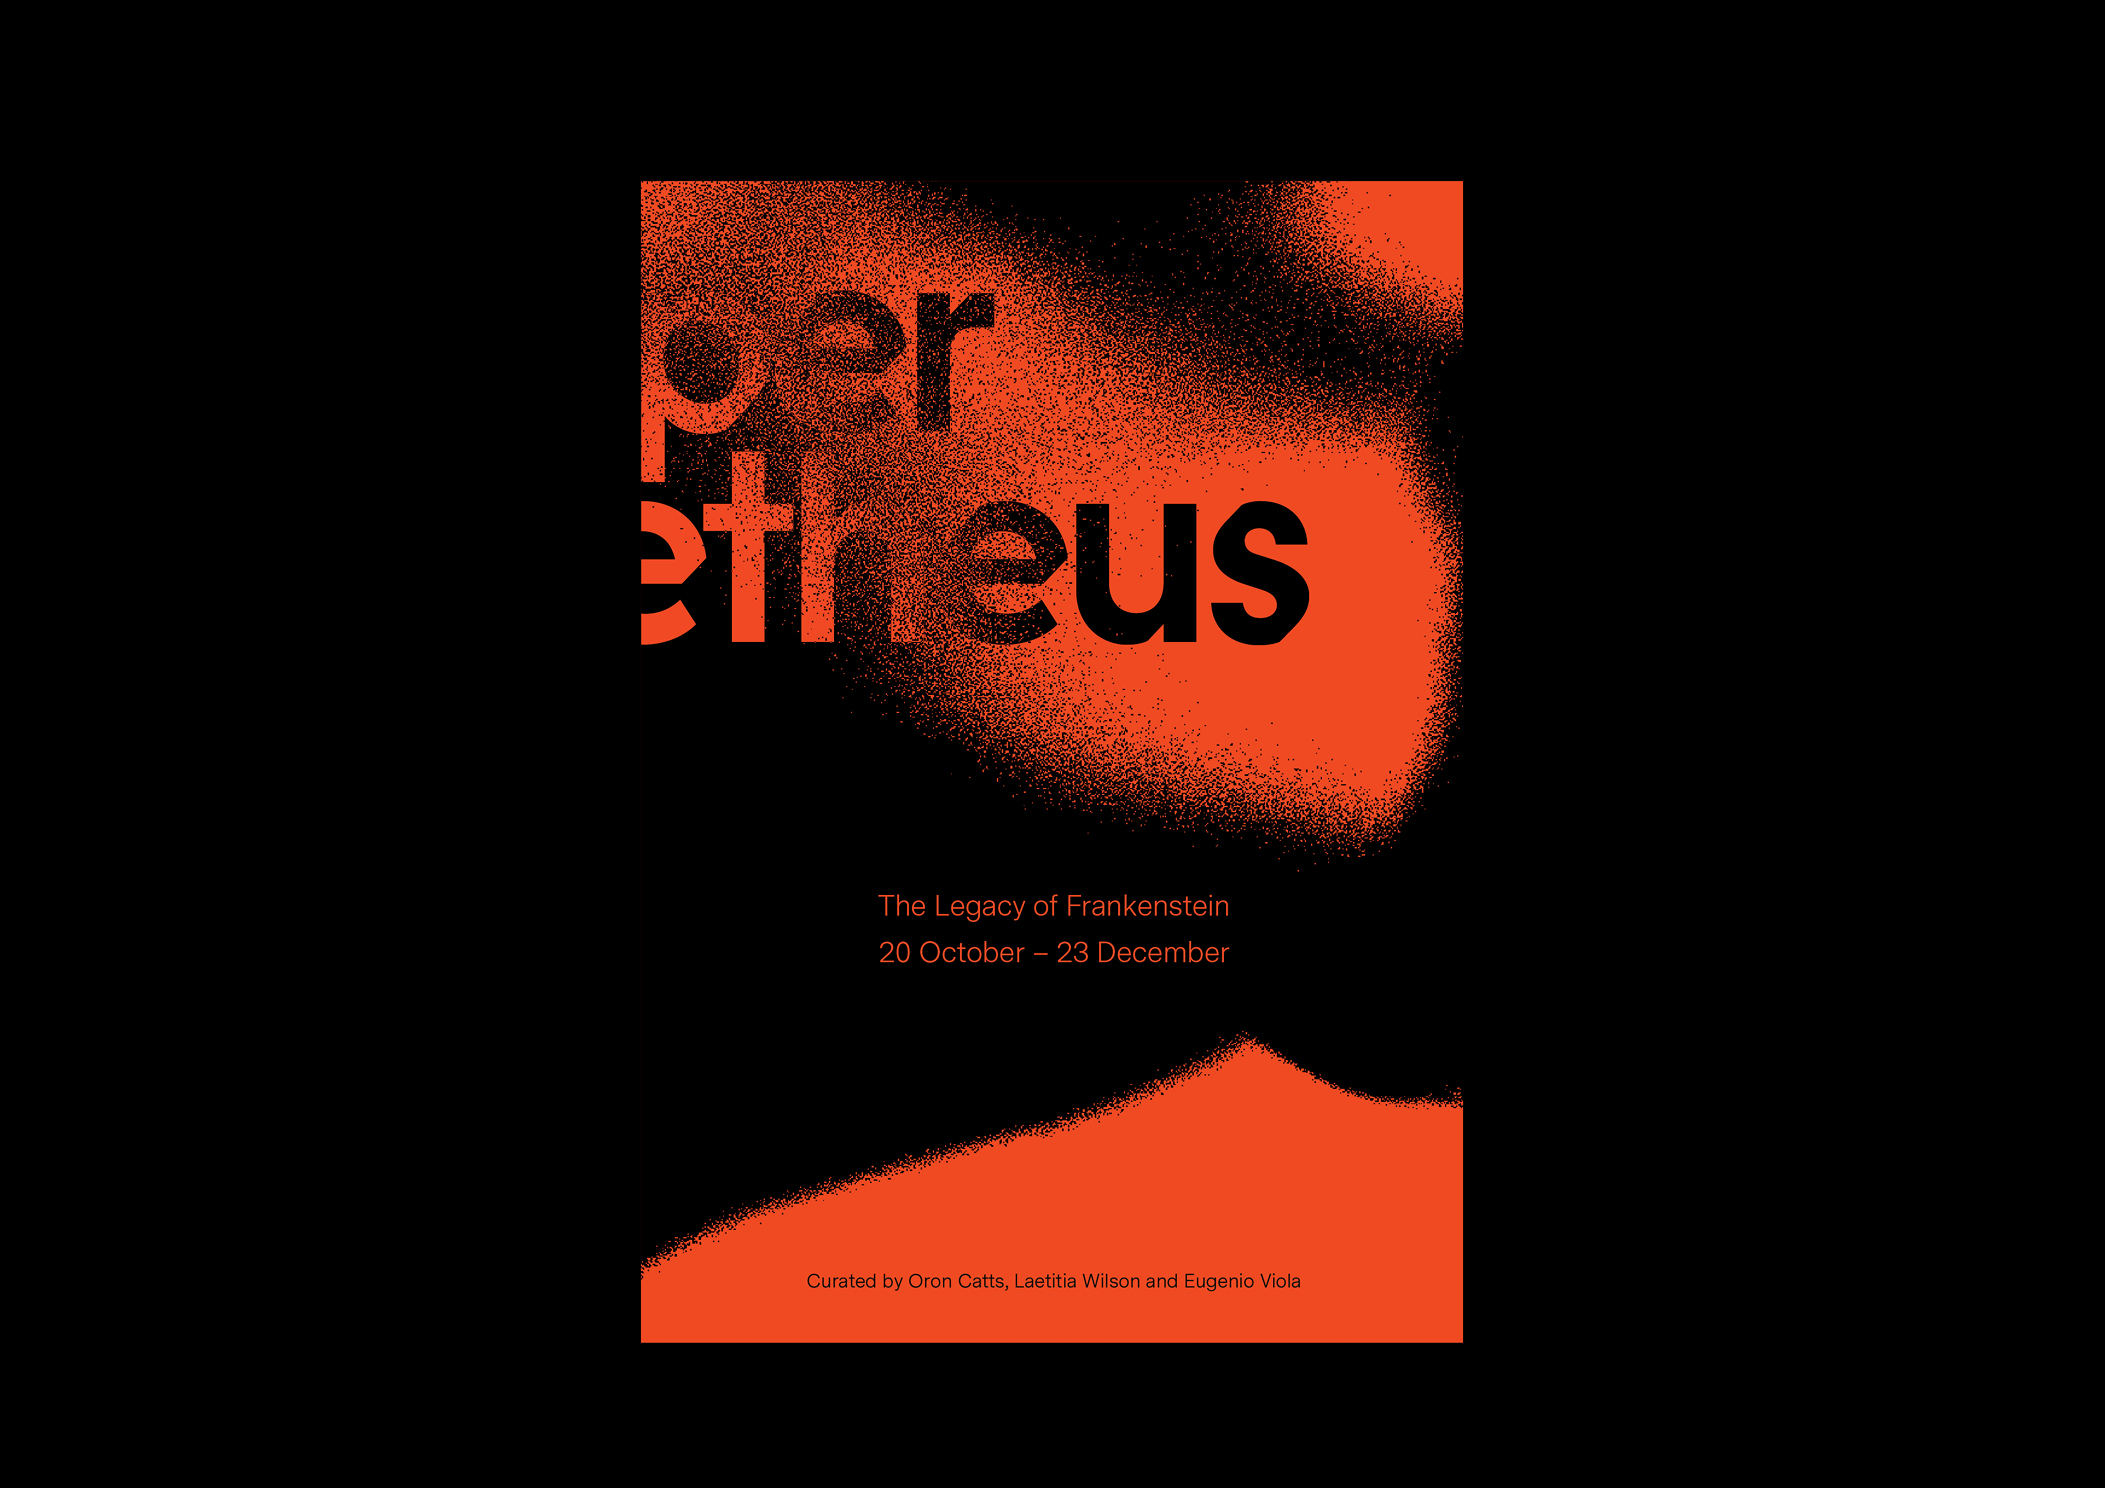 2019 Design and Direction  HyperPrometheus  commemorates the 200th anniversary of the publishing of Mary Shelley's  Frankenstein, or the Modern Prometheus  (1818). Featuring Australian and international artists,  HyperPrometheus  re-contextualises Frankenstein for the new millennium within the realms of contemporary and biological arts. Monsters and monstrous creatures abound, in works that test our understanding of what it is to be human, living, natural, functional, valid or valued. Curated by Oron Catts, Laetitia Wilson and Eugenio Viola.